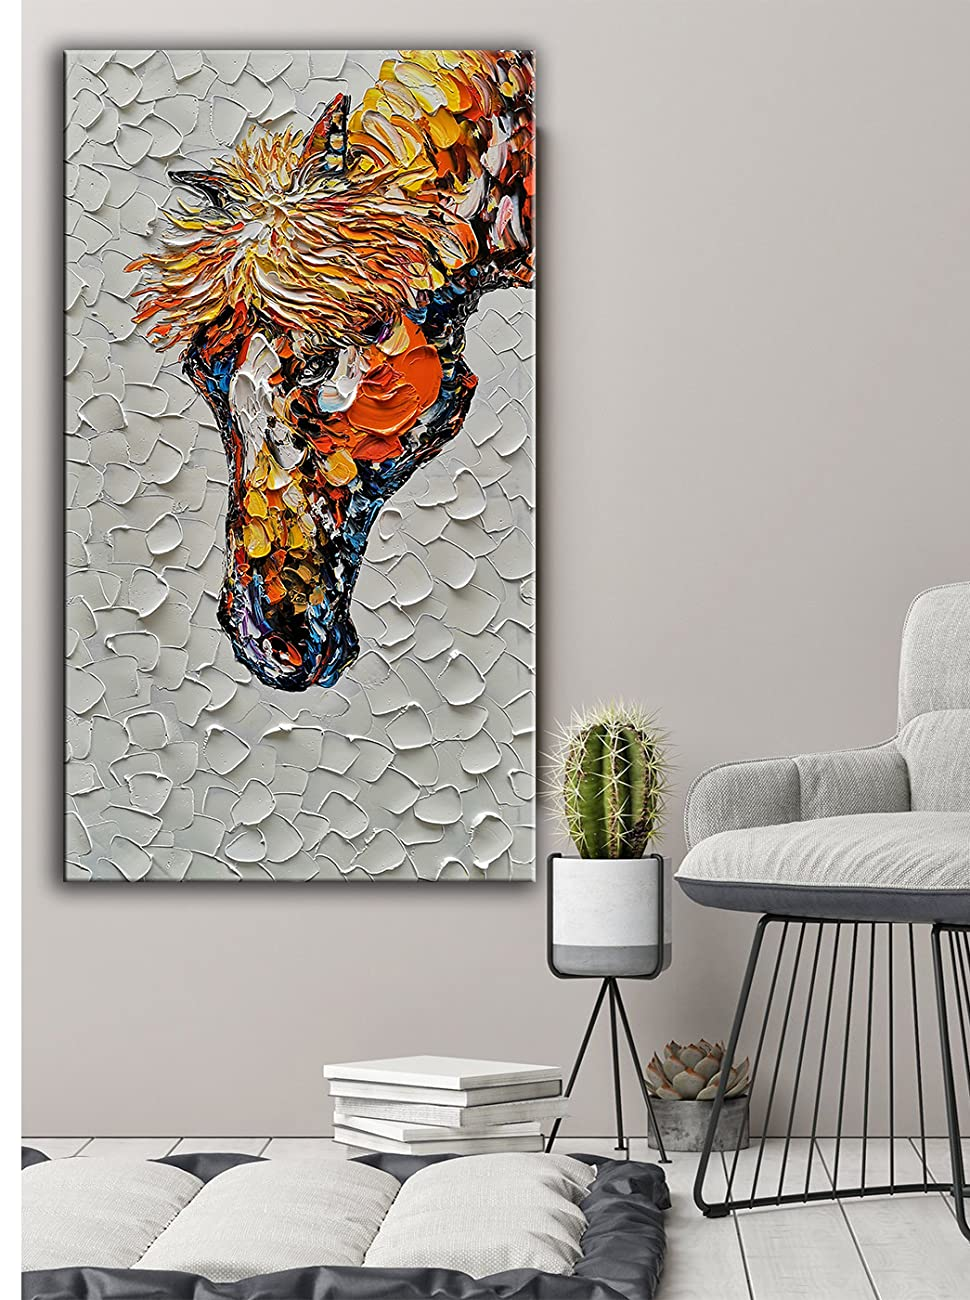 60x120cm Modern Horse Canvas Print Painting Wall Home Room Xmas Decor Unframed